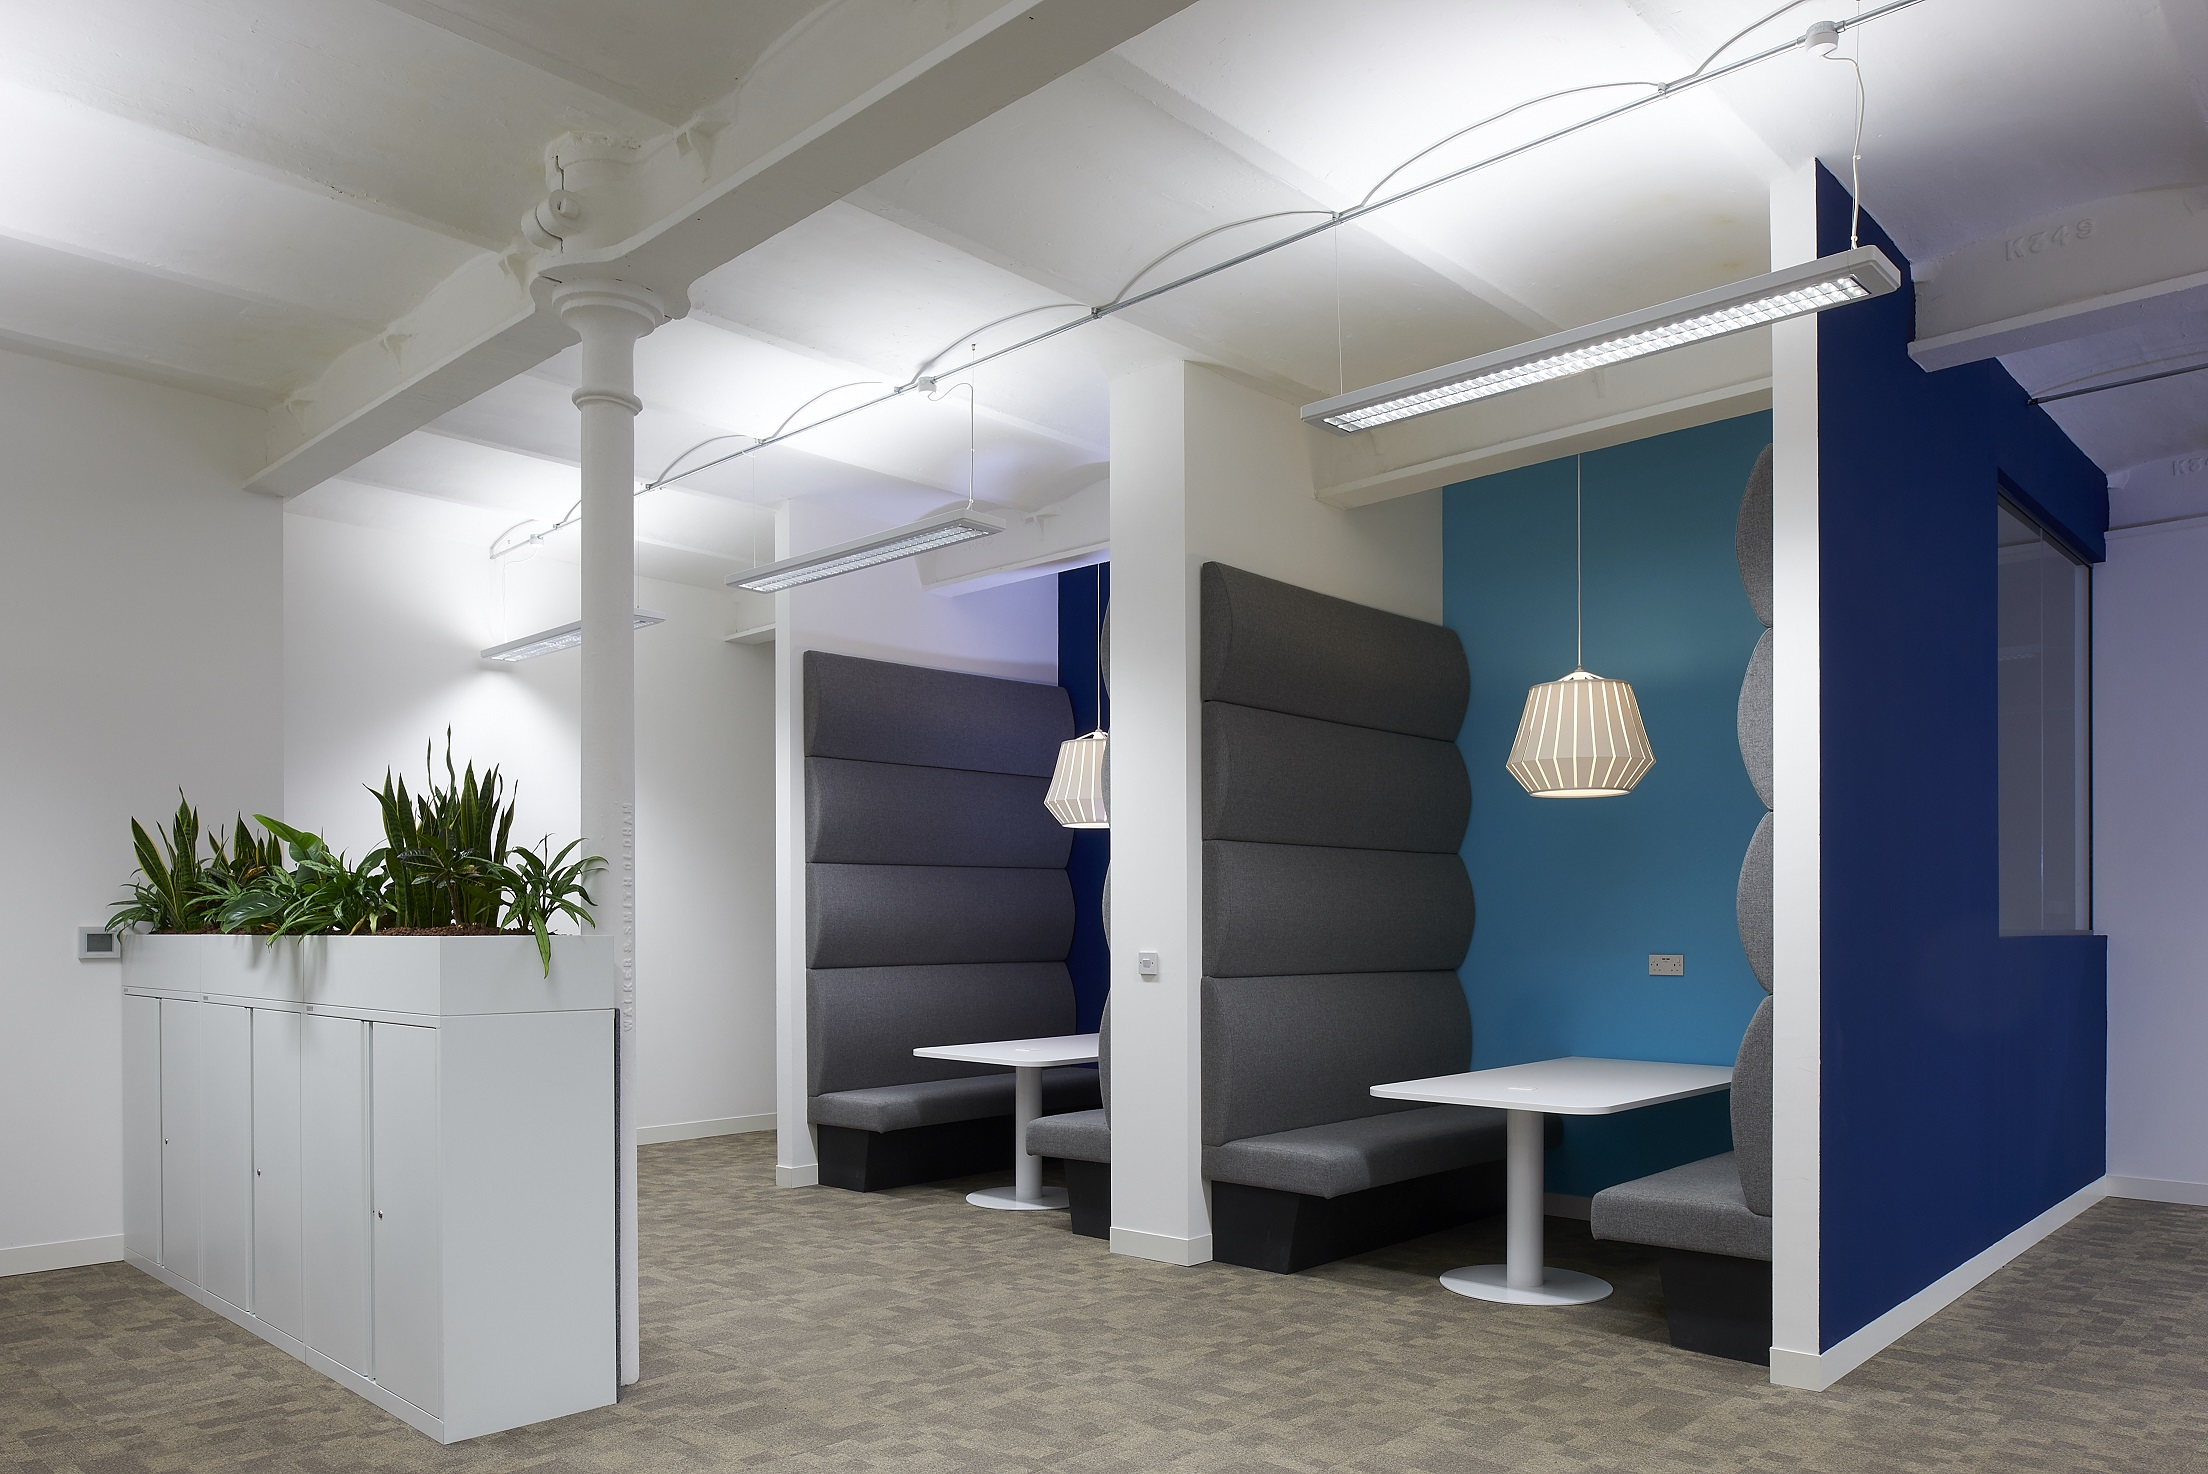 """Two acoustic meeting pods act as """"quiet zones"""" to hold informal meetings between colleagues"""